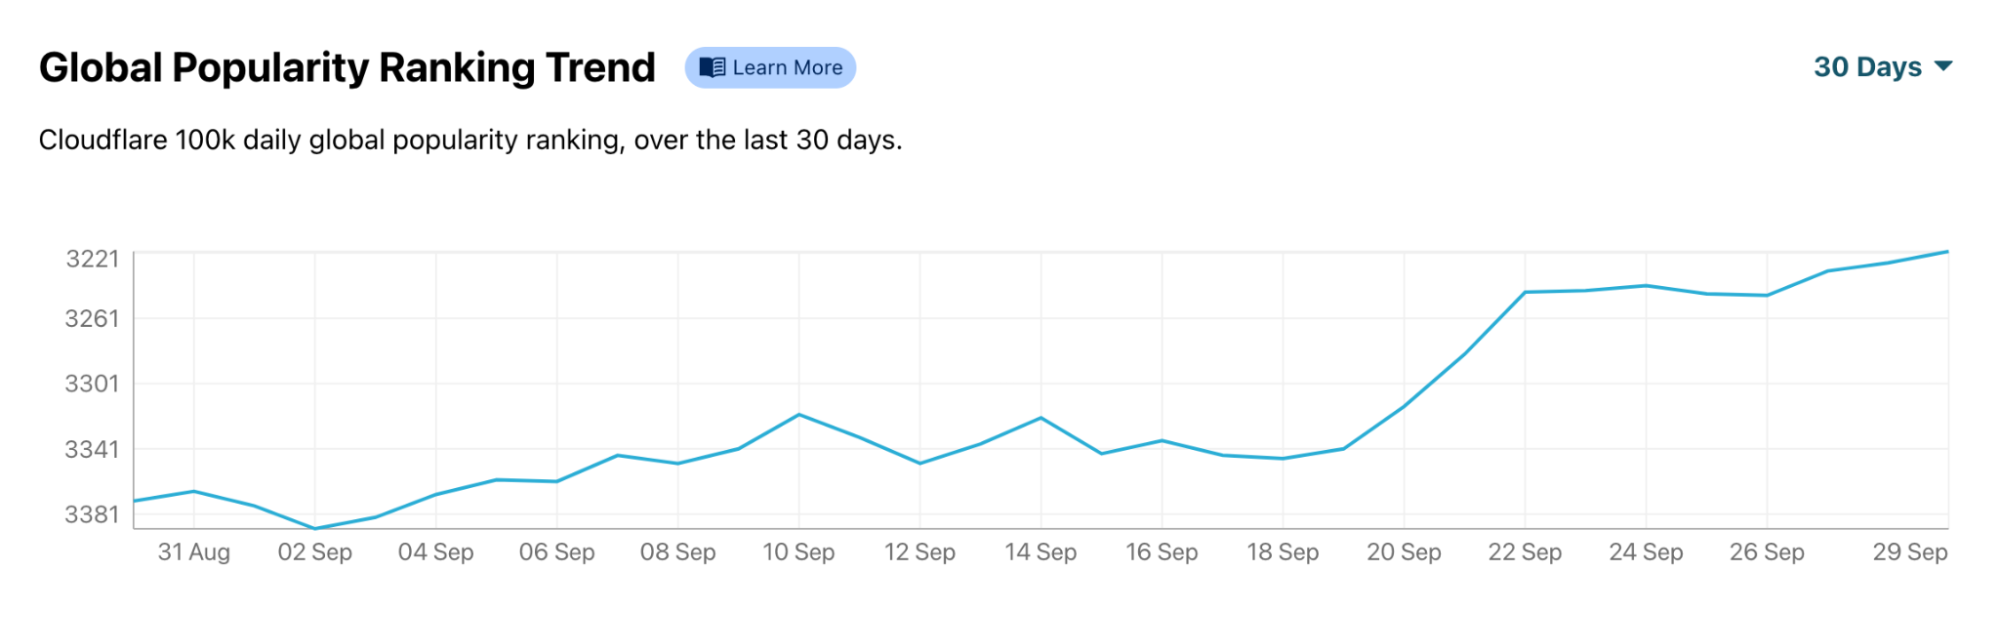 The increase in El País's traffic is clearly visible after Sunday, September 19, 2021